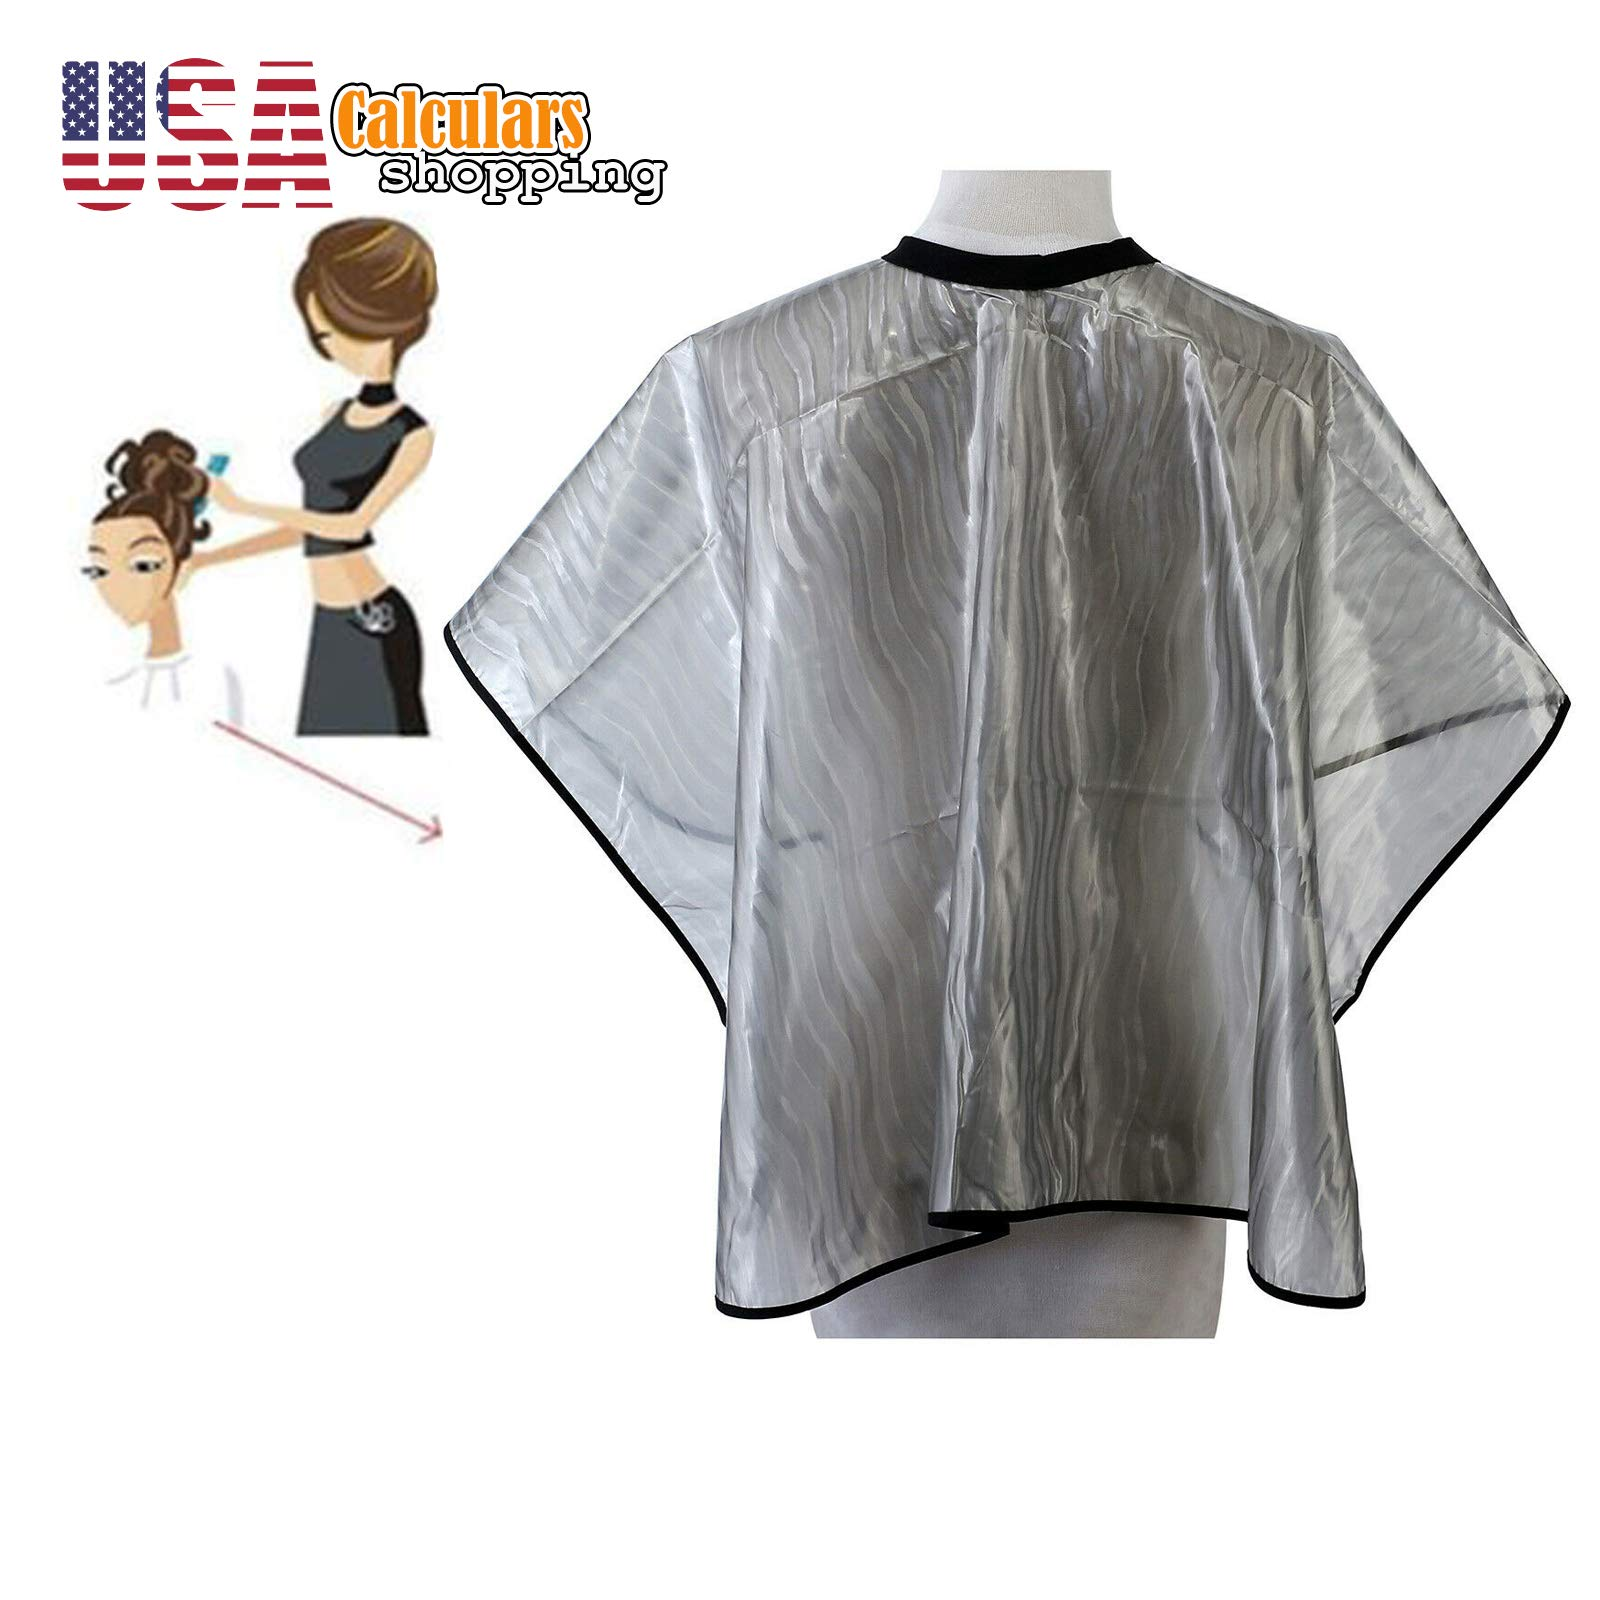 US Seller Hair Cutting Dye Cape Pro Salon Hairdressing Hairdresser Gown Barber Cloth Apron (Gray) by Calculars